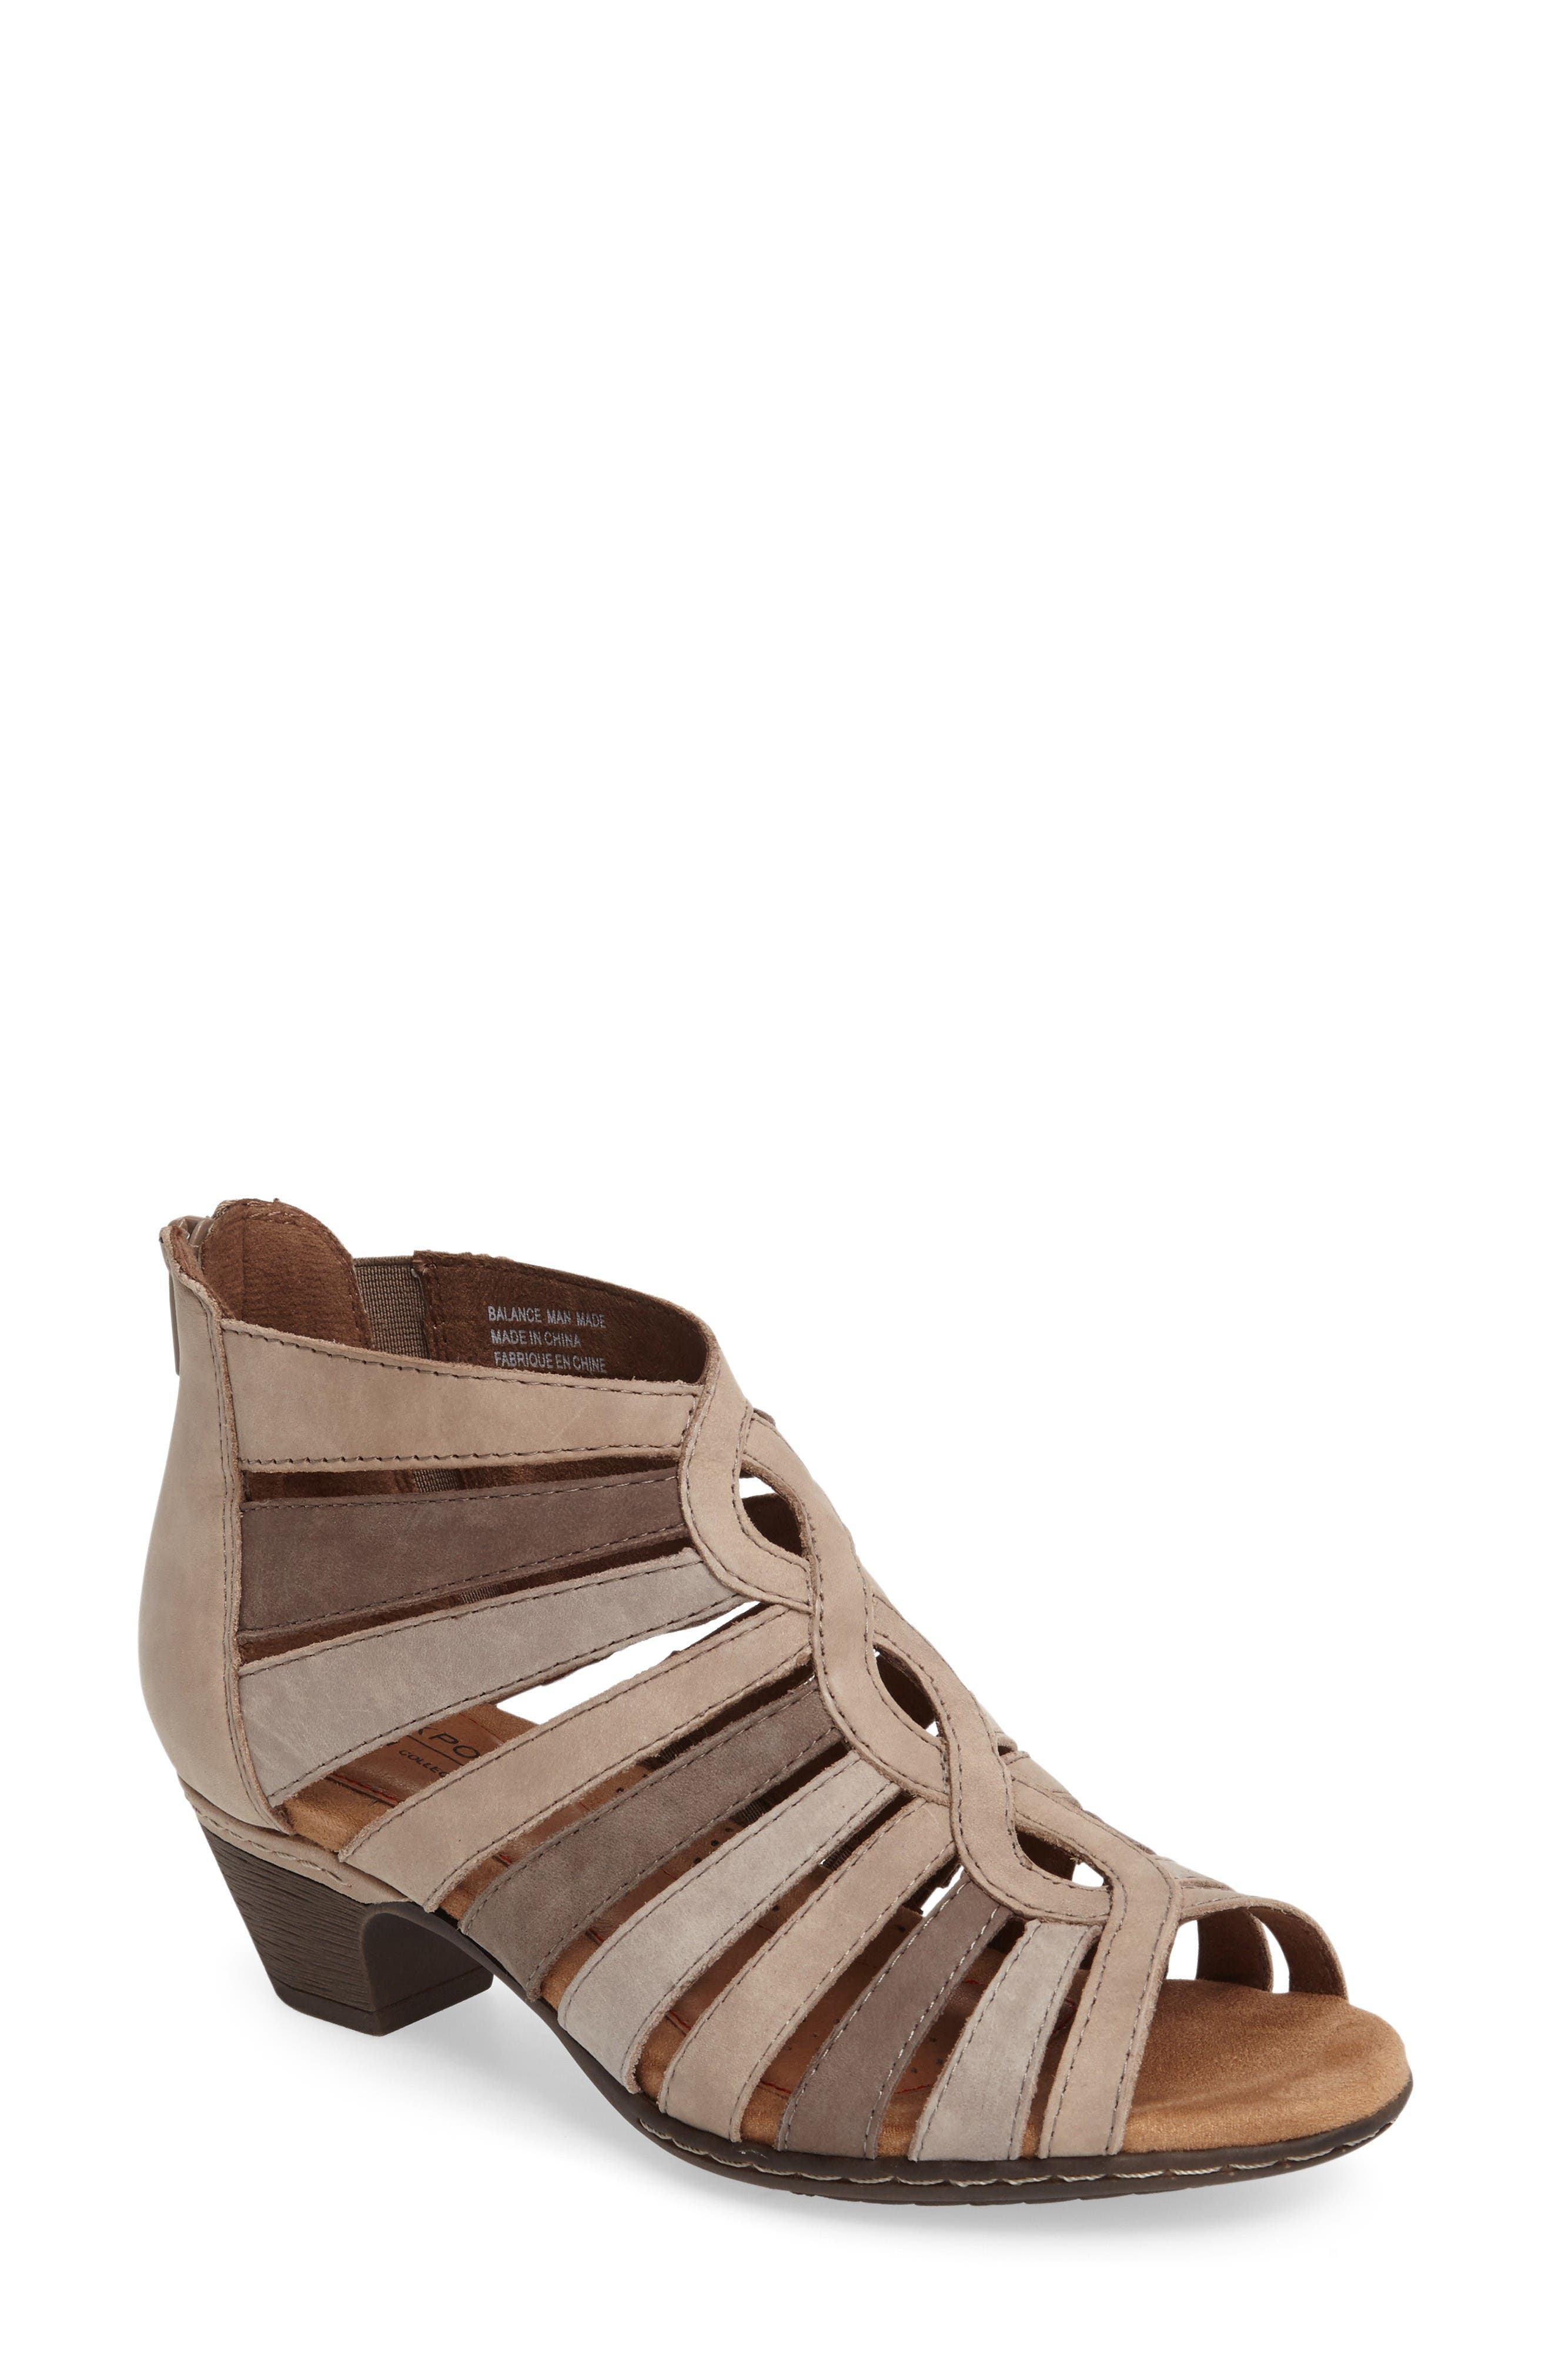 Abbott Caged Sandal,                         Main,                         color, Light Khaki Multi Leather